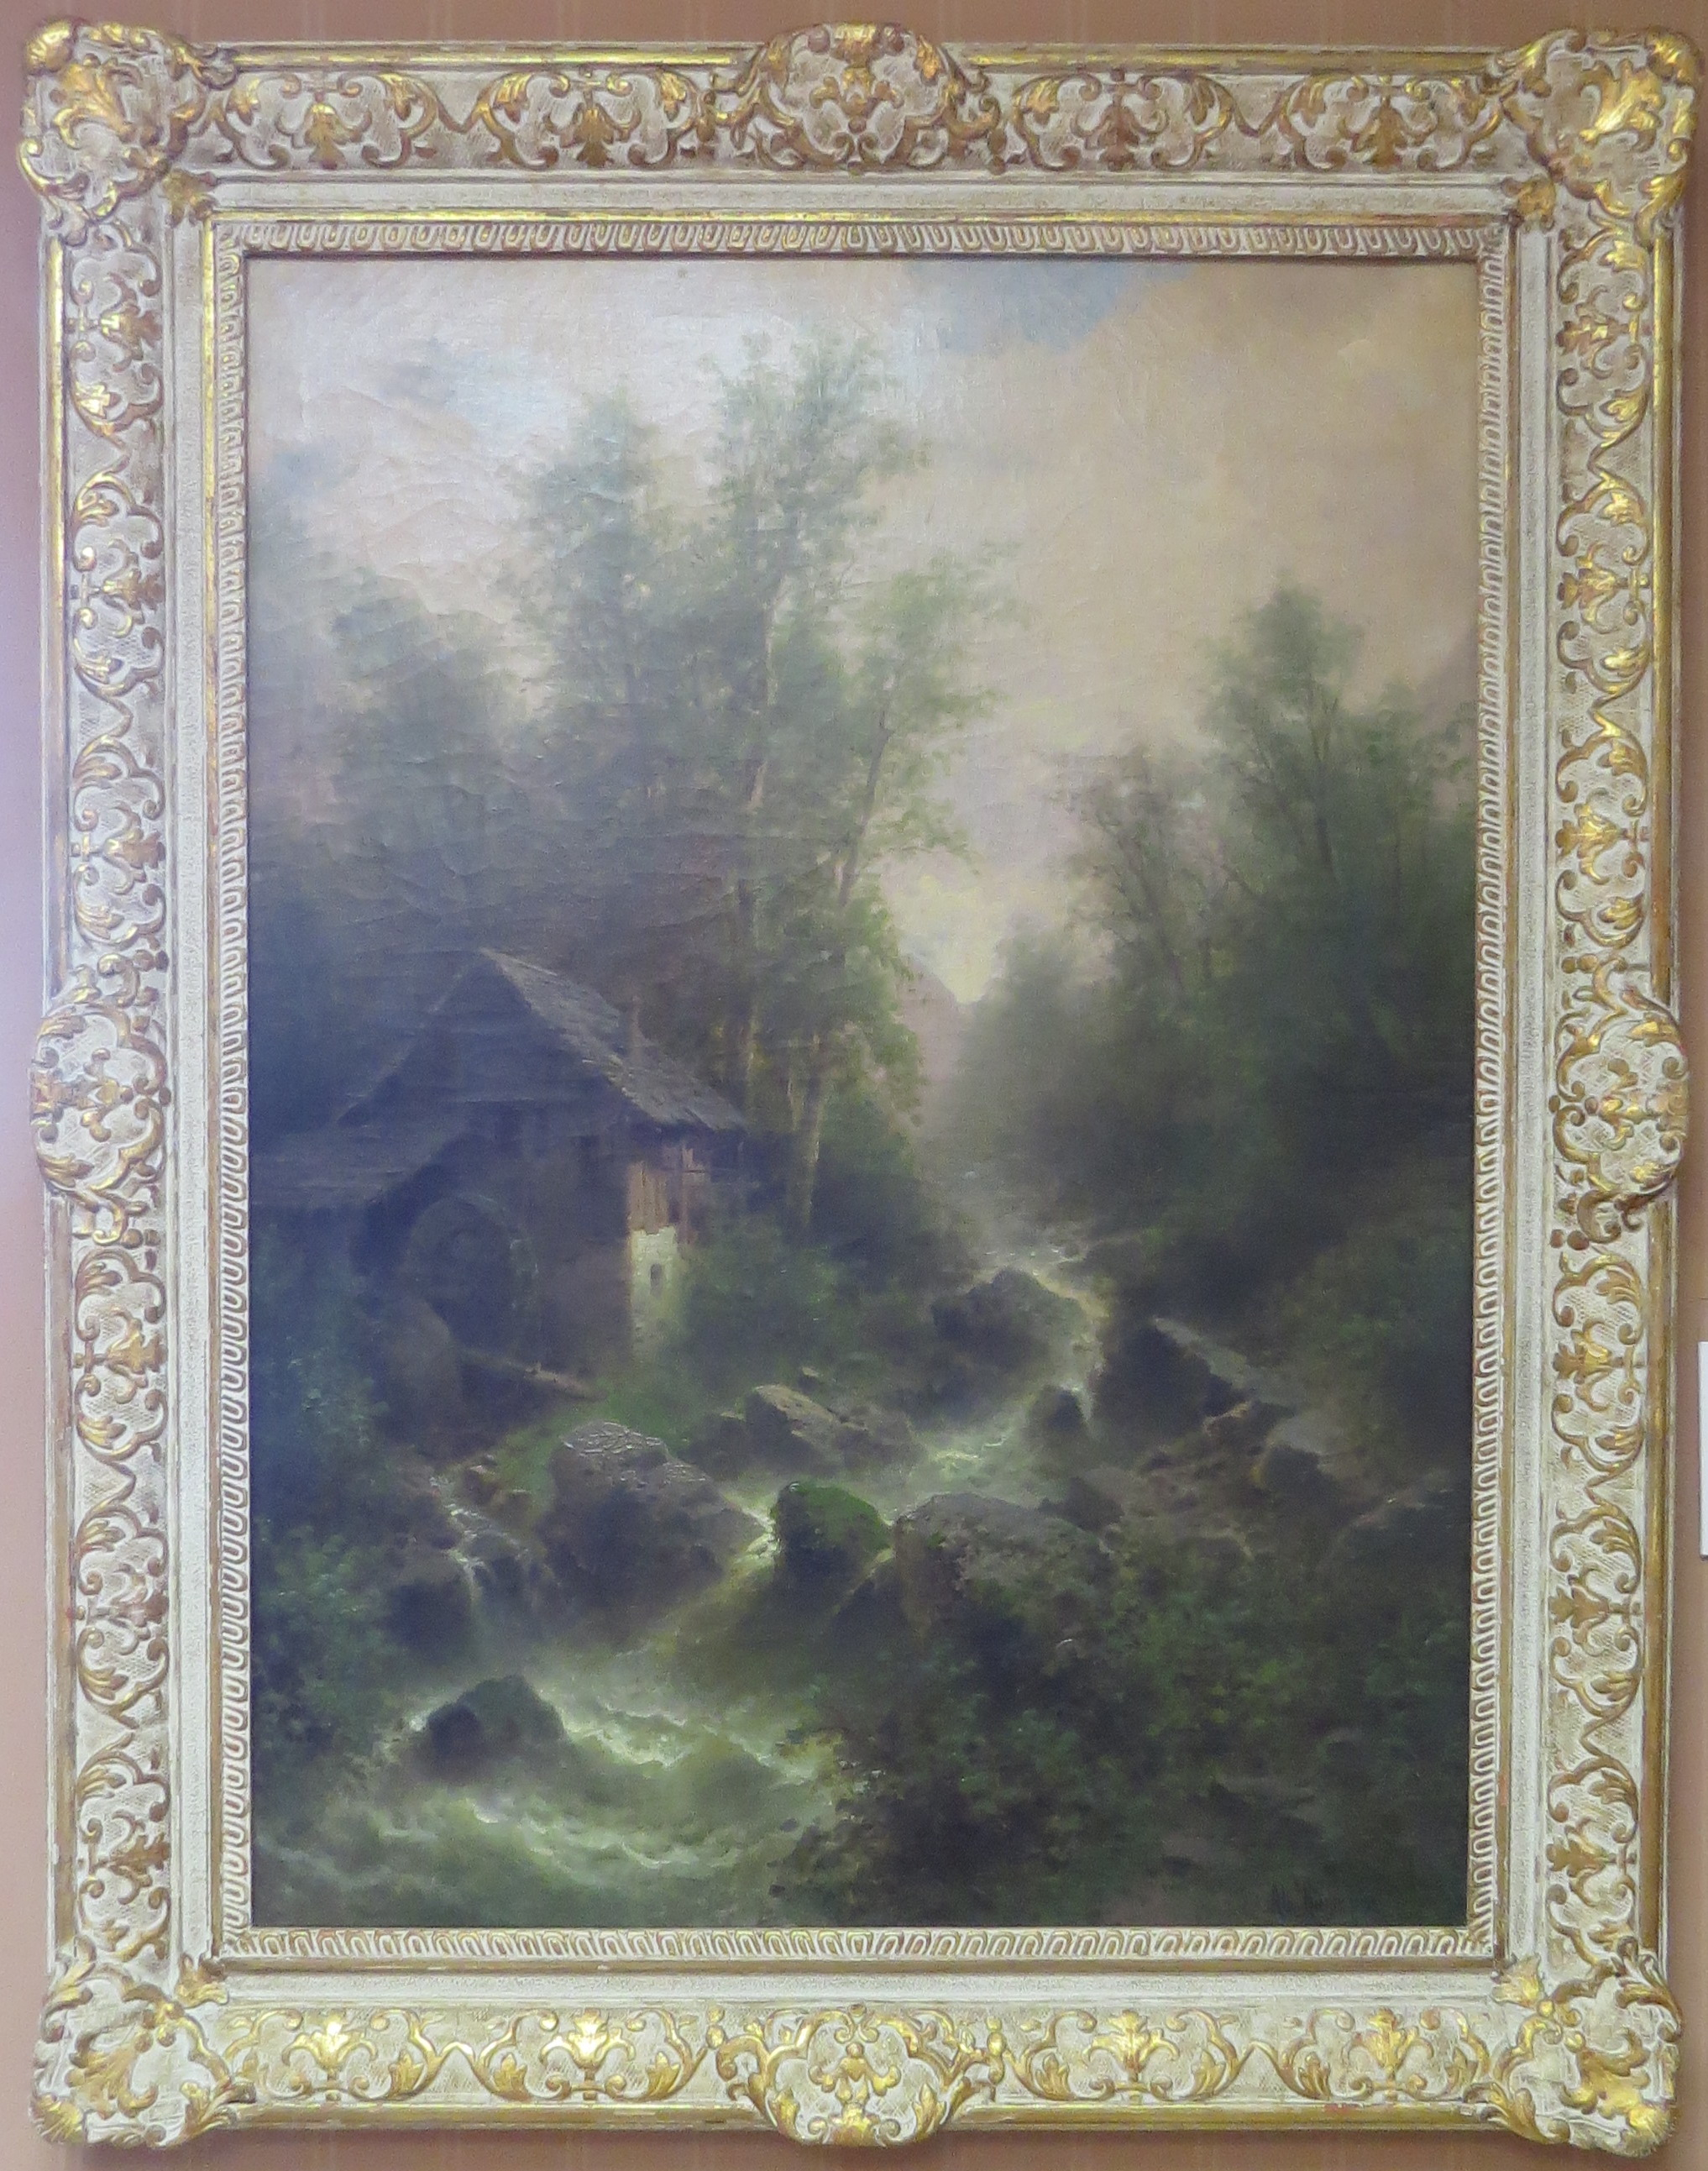 Oil on Canvas of a Mountain River & Mill Scene, Signed Albert Rieger (Austrian, 1834-1905)